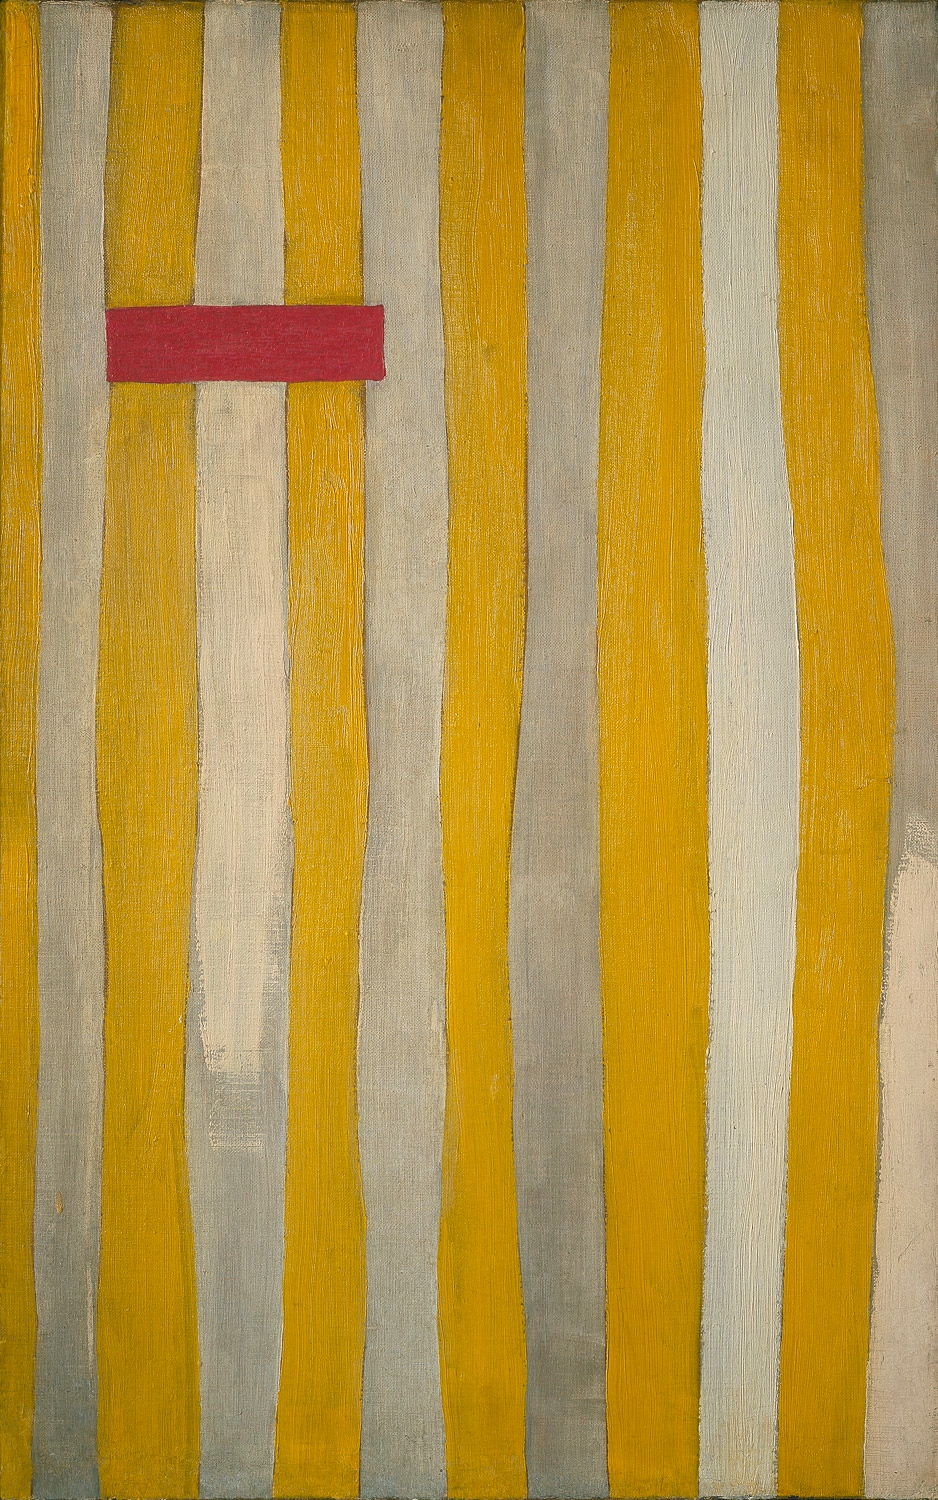 ROBERT MOTHERWELL The Little Spanish Prison, 1941 -1944 | Oil on canvas 27 1/4 × 17 1/8 in | 69.2 × 43.5 cm